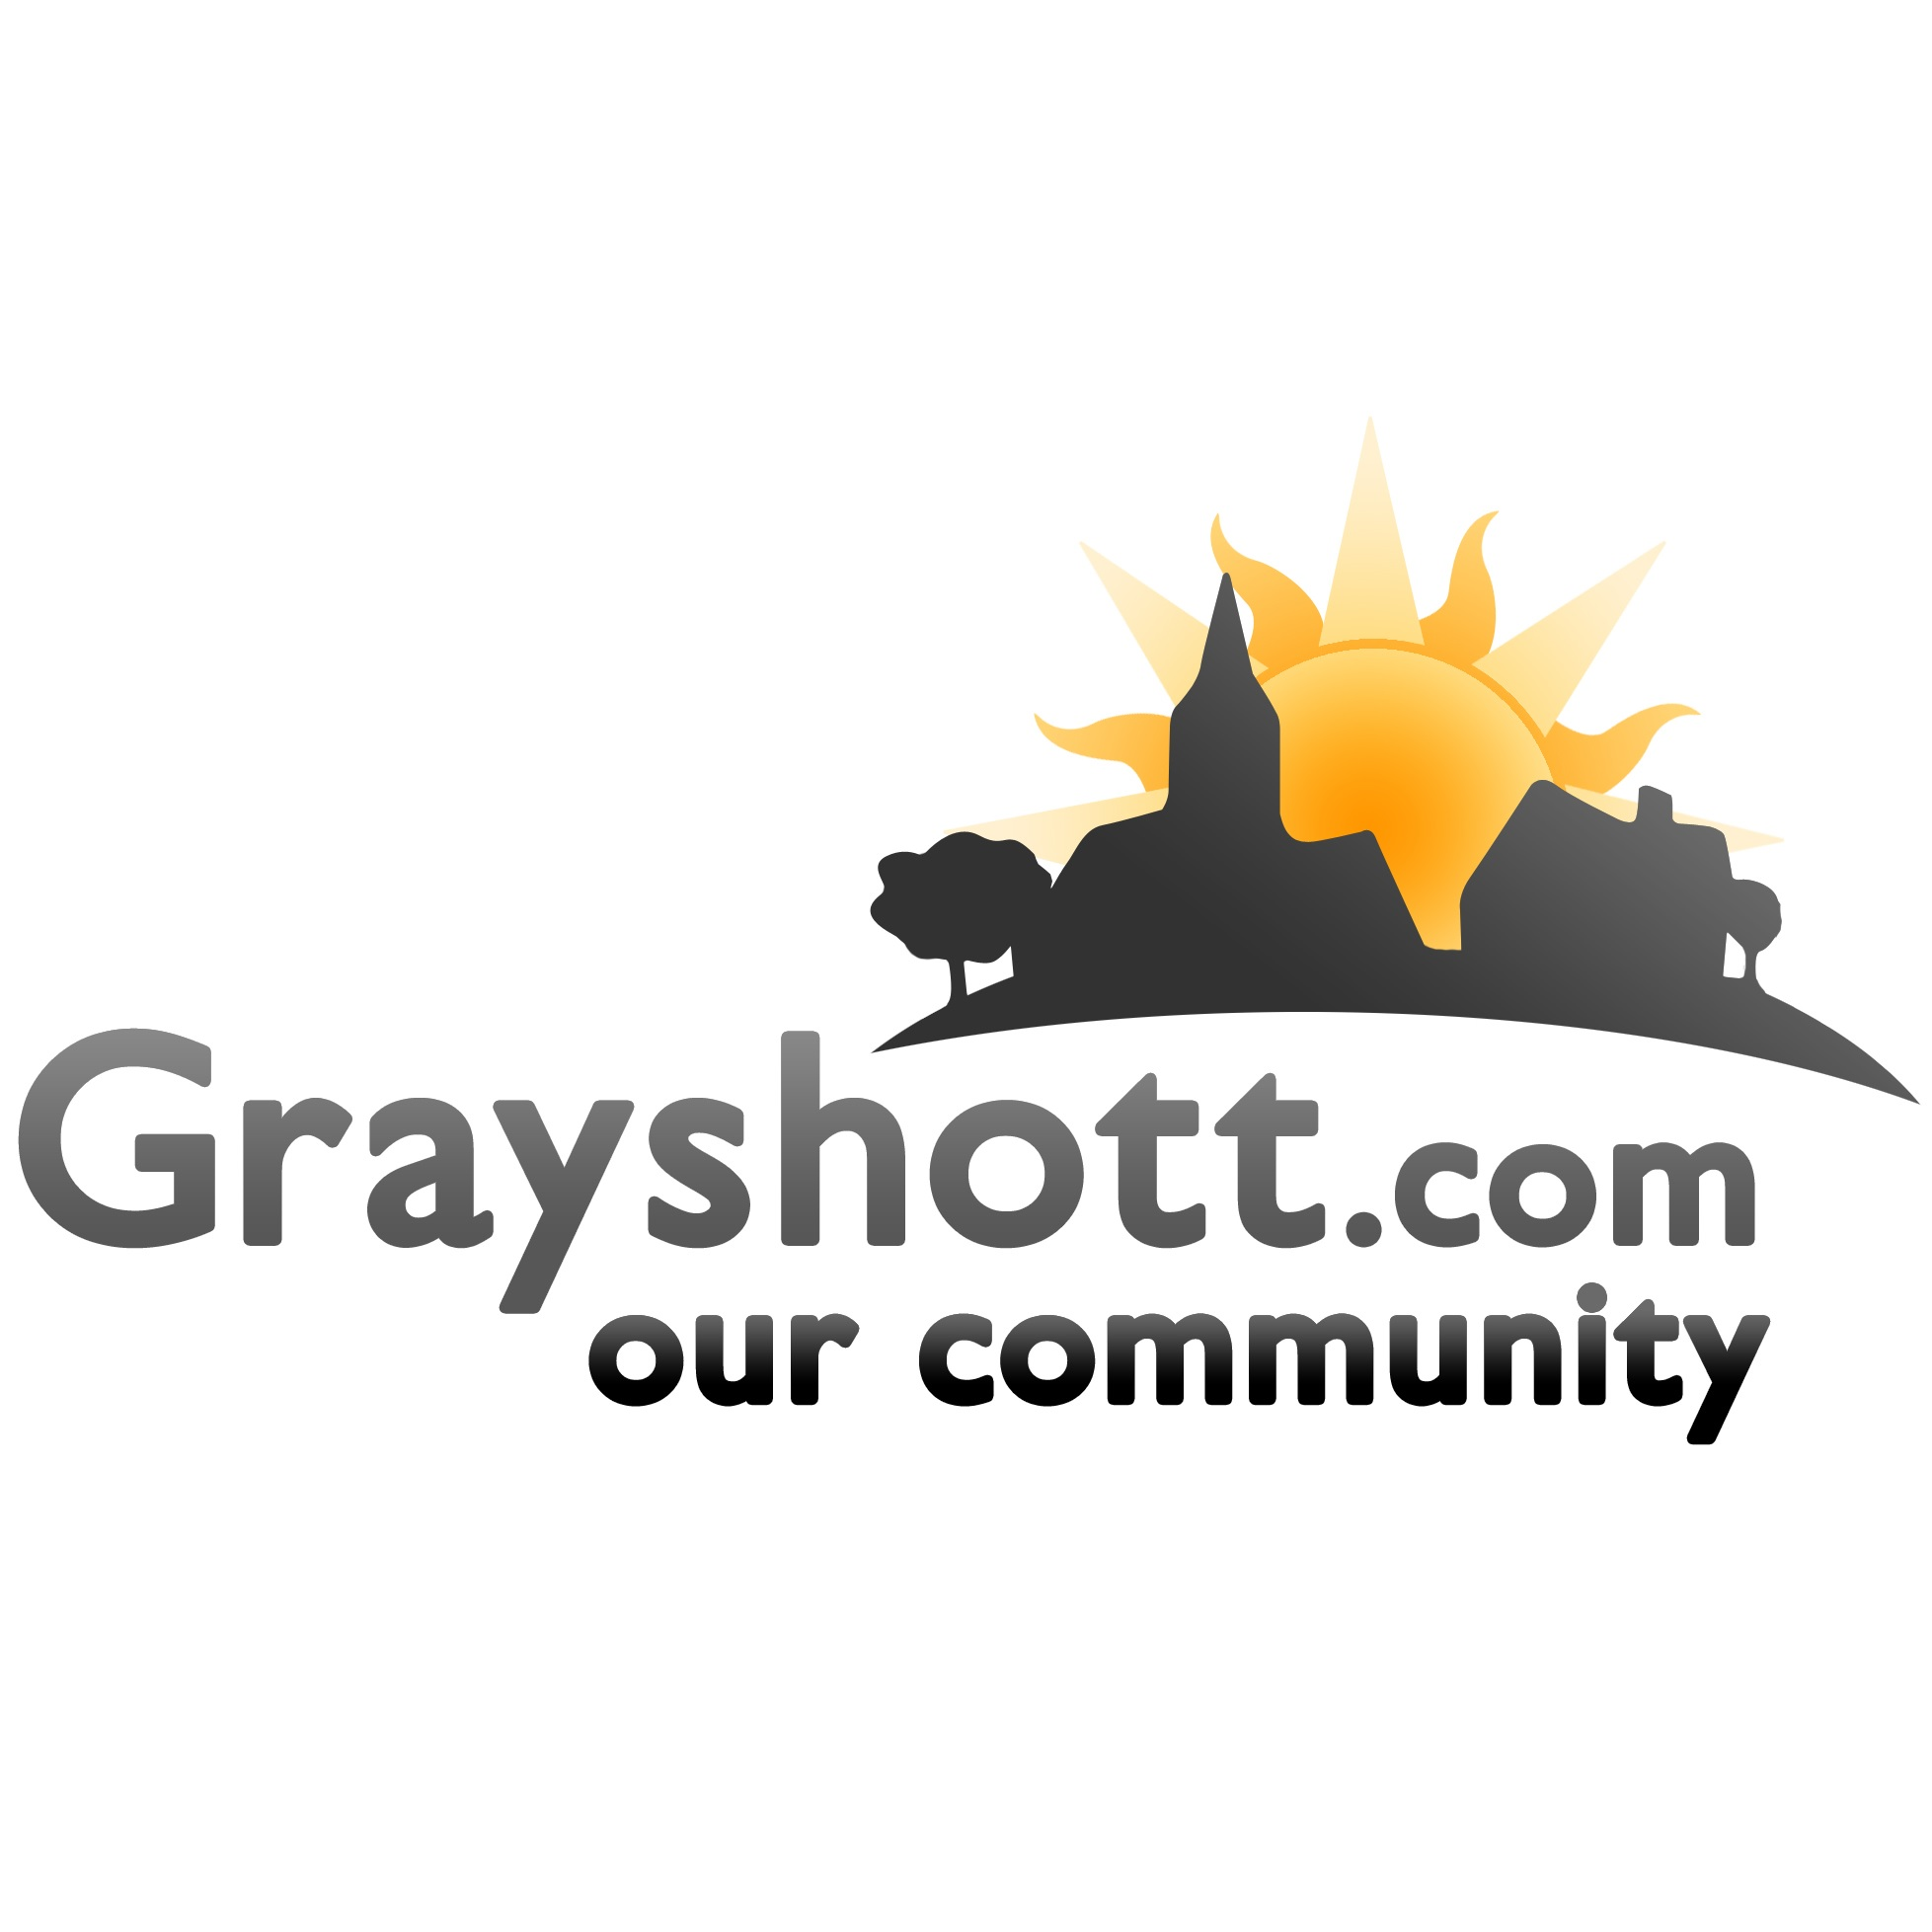 Grayshott Community